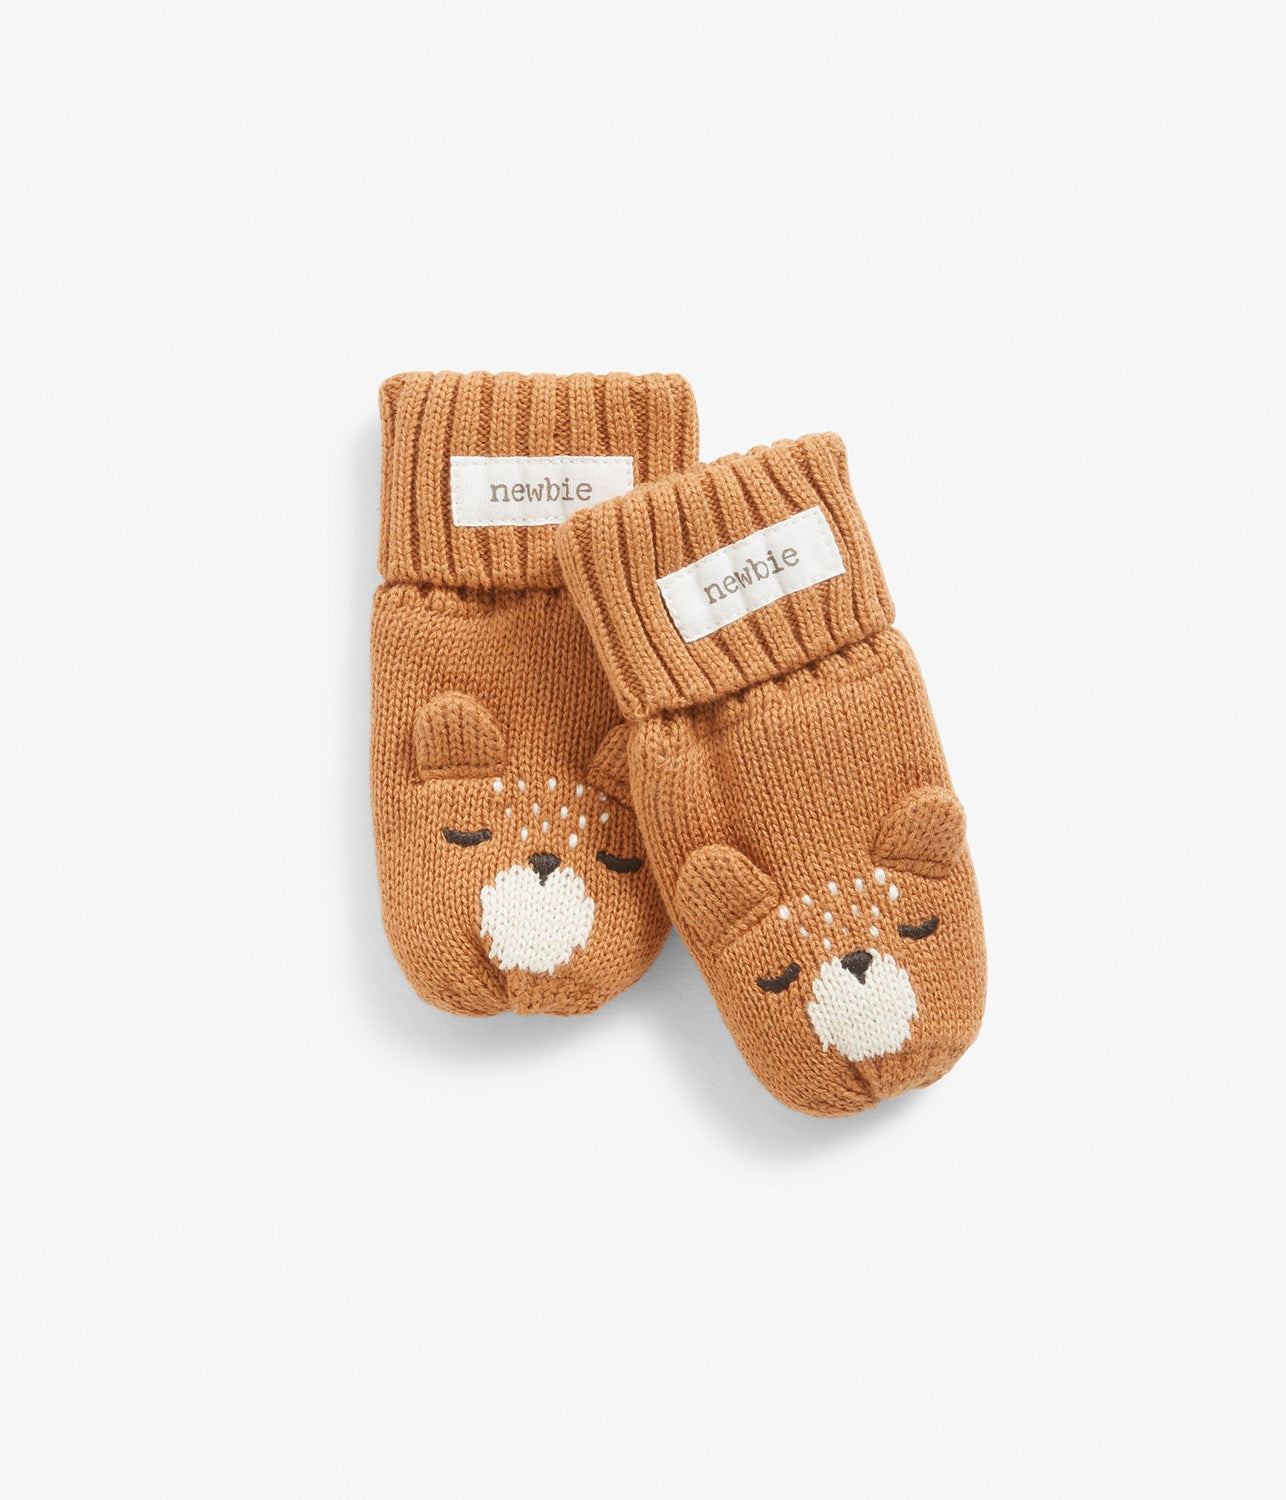 Baby knitted mittens with bear animal face and ears motif